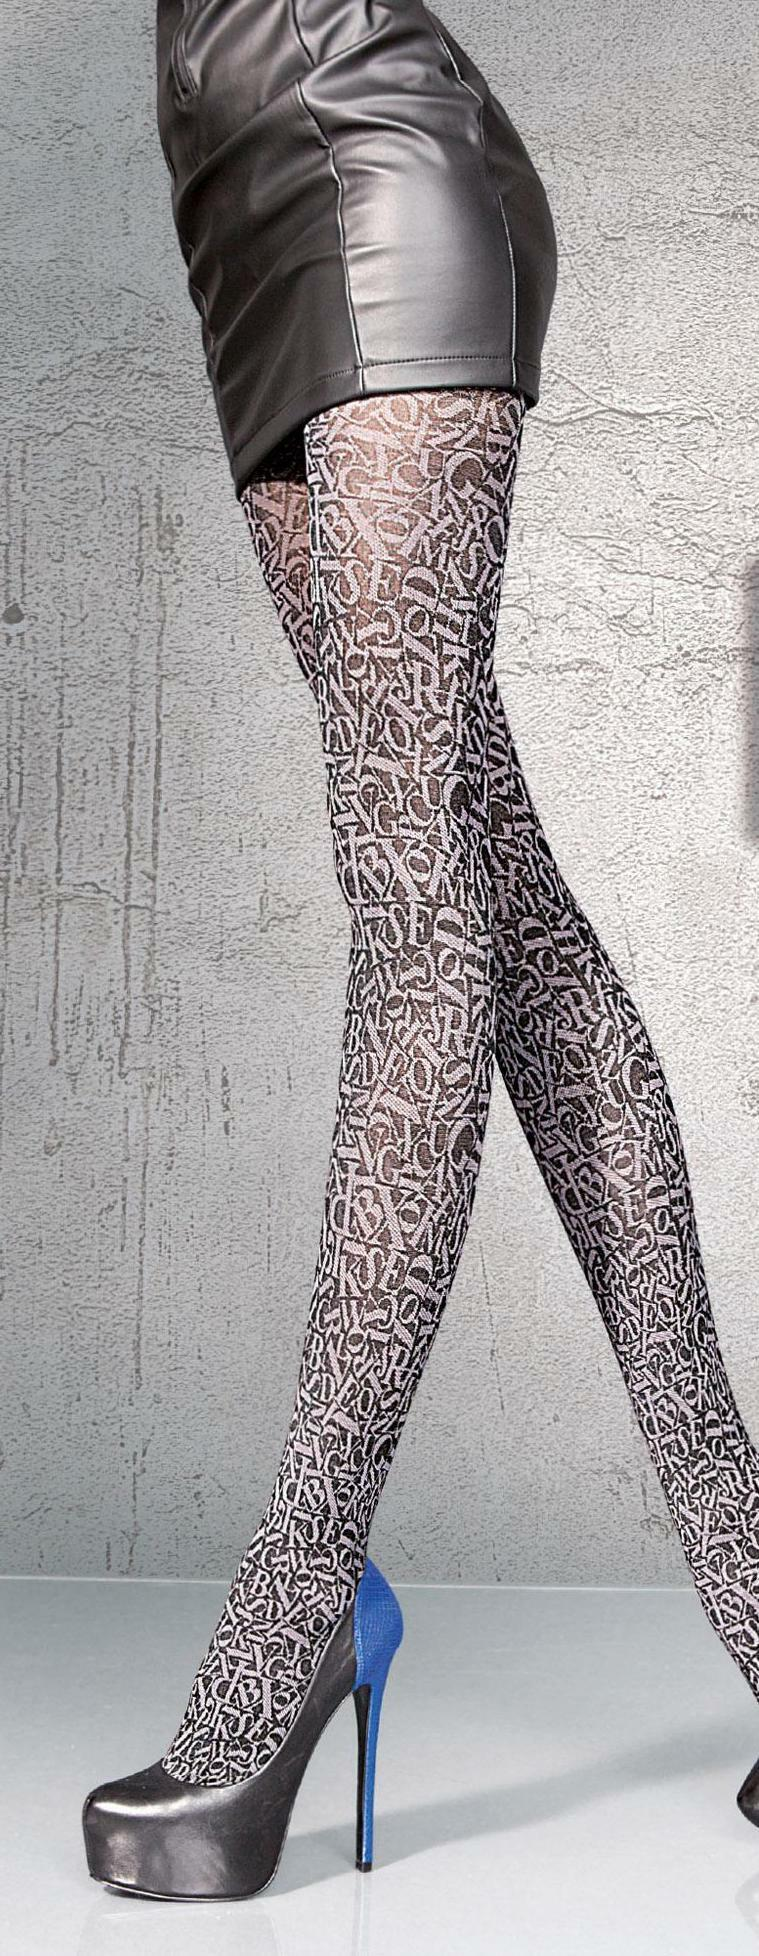 Fiore: Stiletto Thighs Patterned Tights (Few Left!) FIO_Danisa